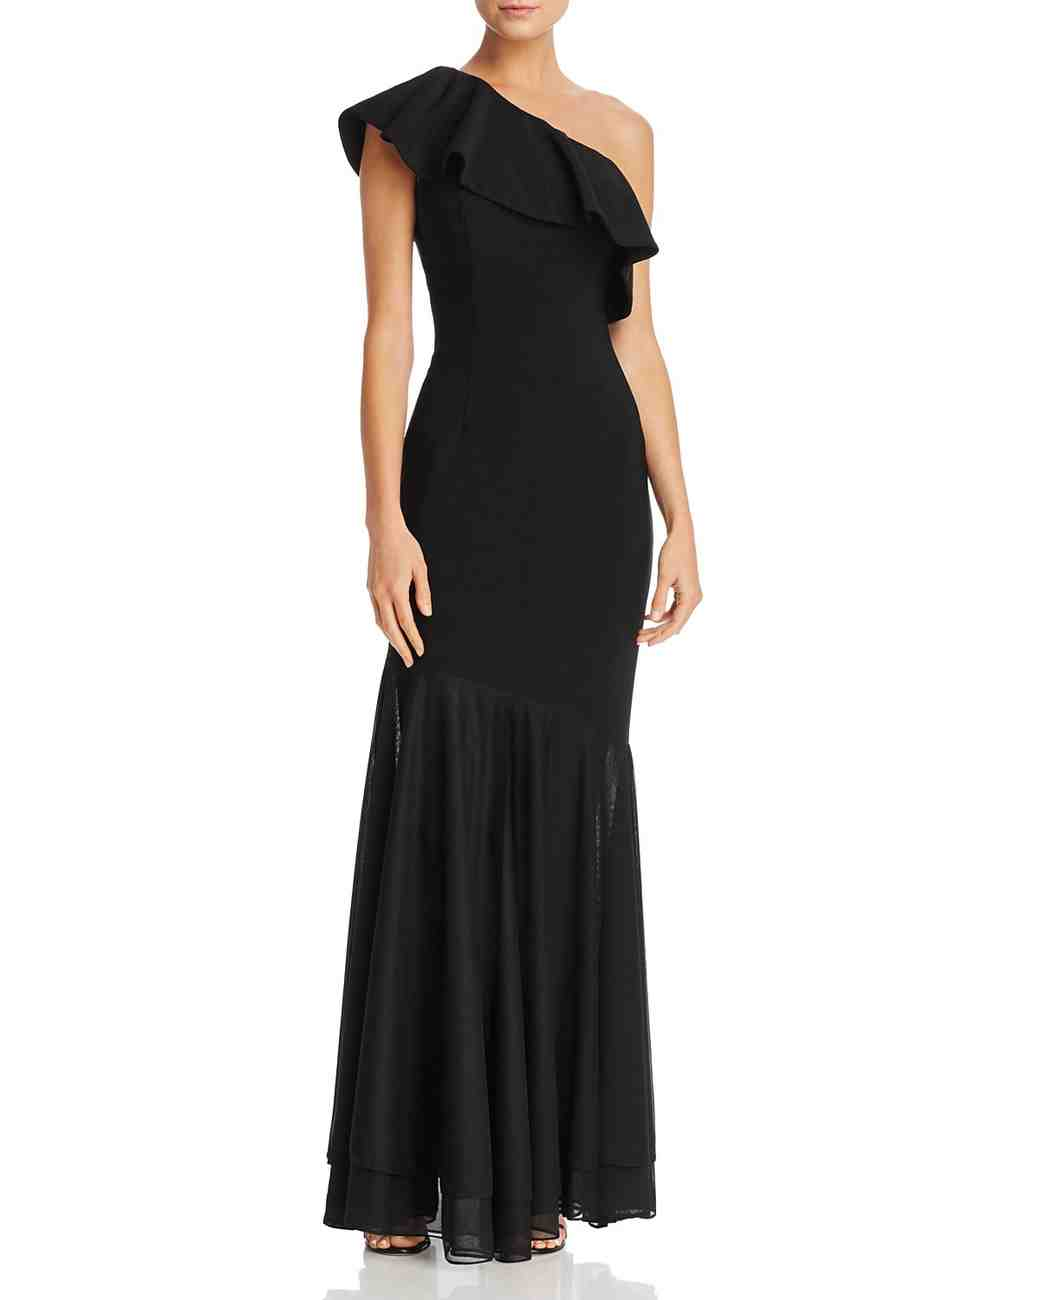 Elegant Black Dresses For The Mothers Of Bride And Groom Martha Weddings